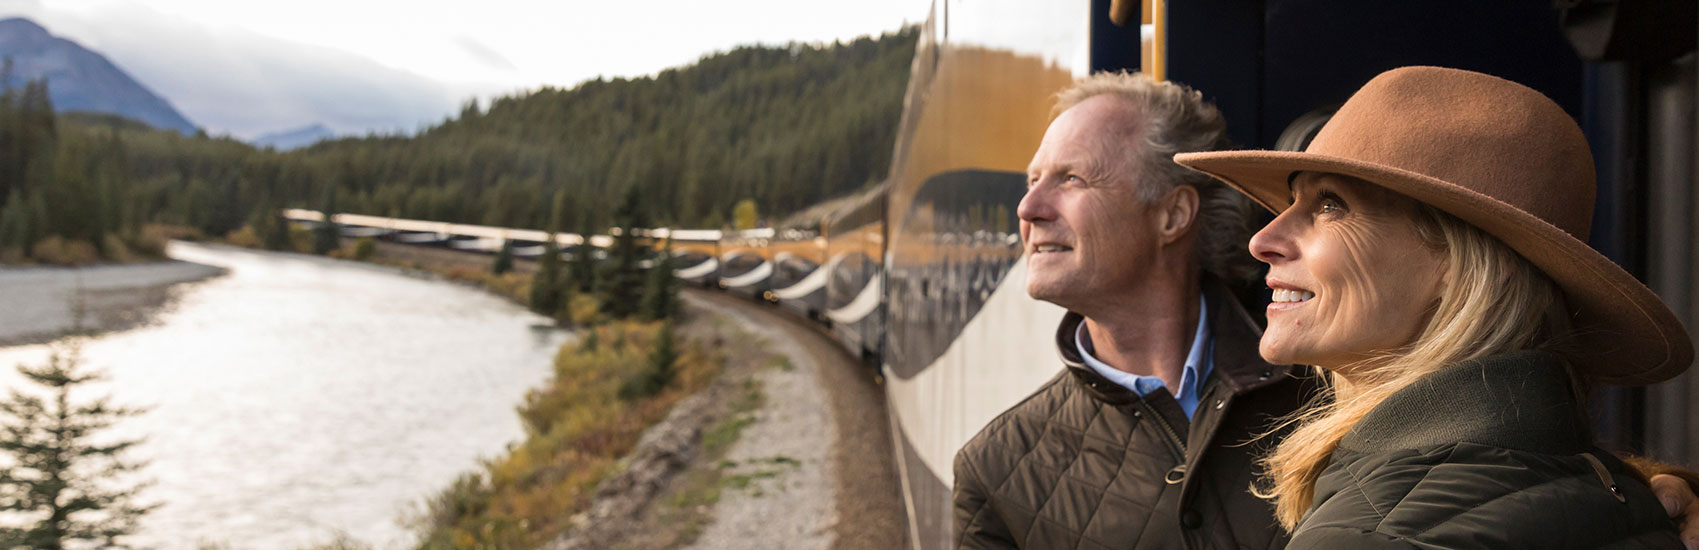 Tout le monde à bord du train Rocky Mountaineer en 2021!